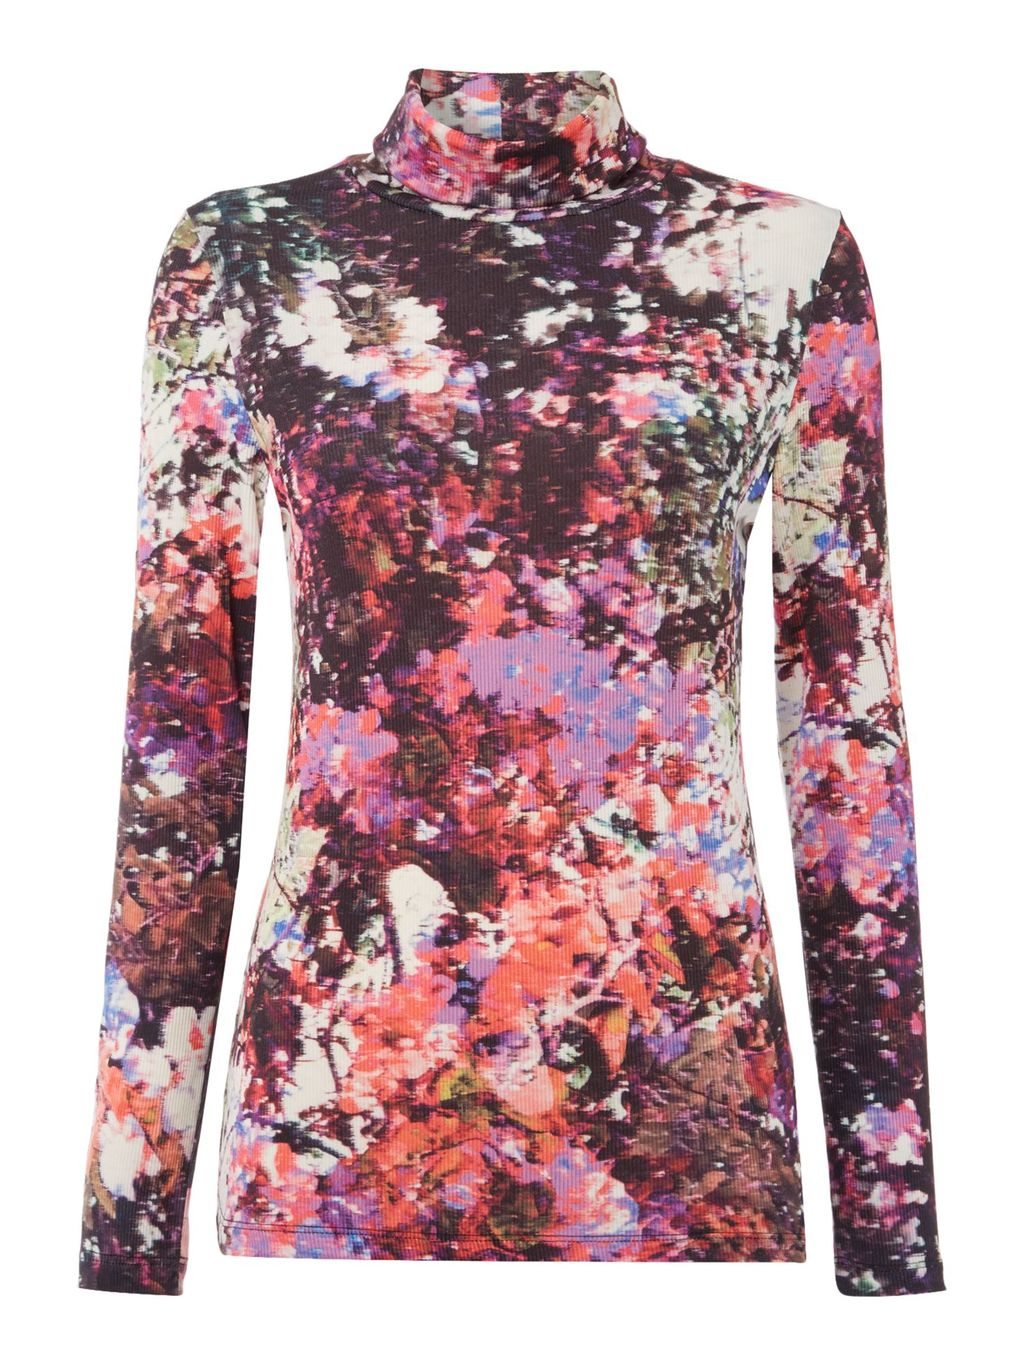 Print Longsleeve Rollneck Top, Multi Coloured - neckline: high neck; predominant colour: pink; secondary colour: pink; occasions: casual; length: standard; style: top; fibres: polyester/polyamide - stretch; fit: body skimming; sleeve length: long sleeve; sleeve style: standard; pattern type: fabric; pattern: florals; texture group: jersey - stretchy/drapey; multicoloured: multicoloured; season: s/s 2016; trends: vivid mix